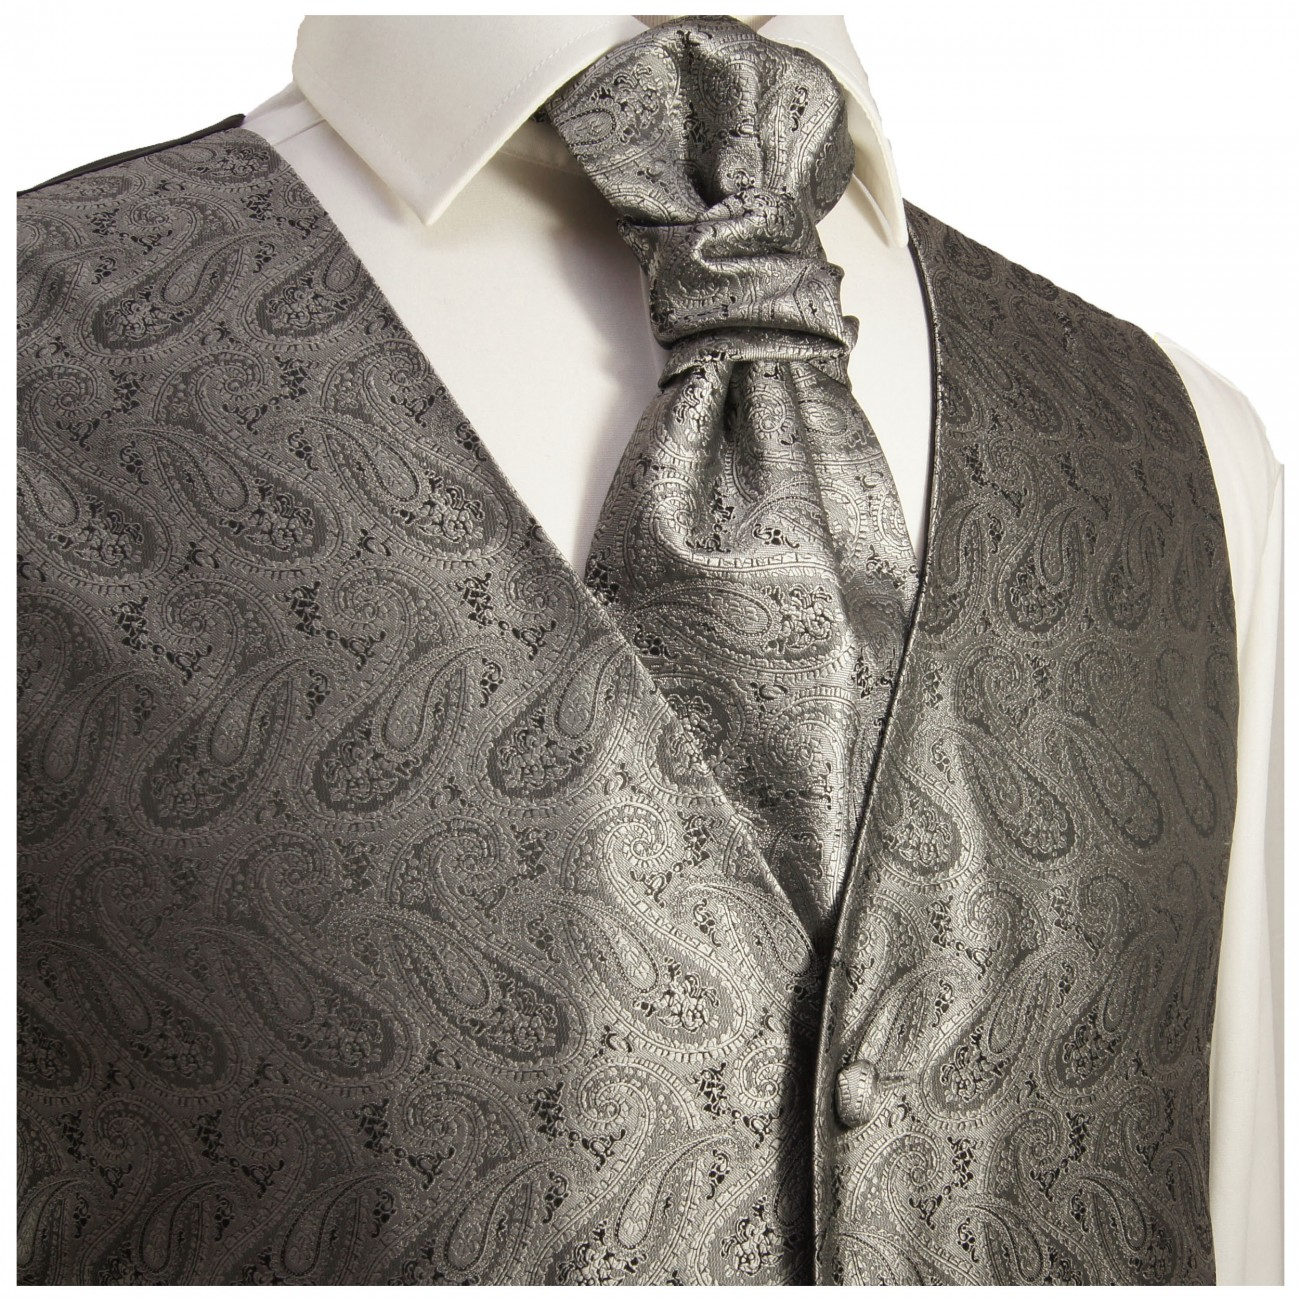 WEDDING VEST SET grey and Smoking Shirt white V30HL25